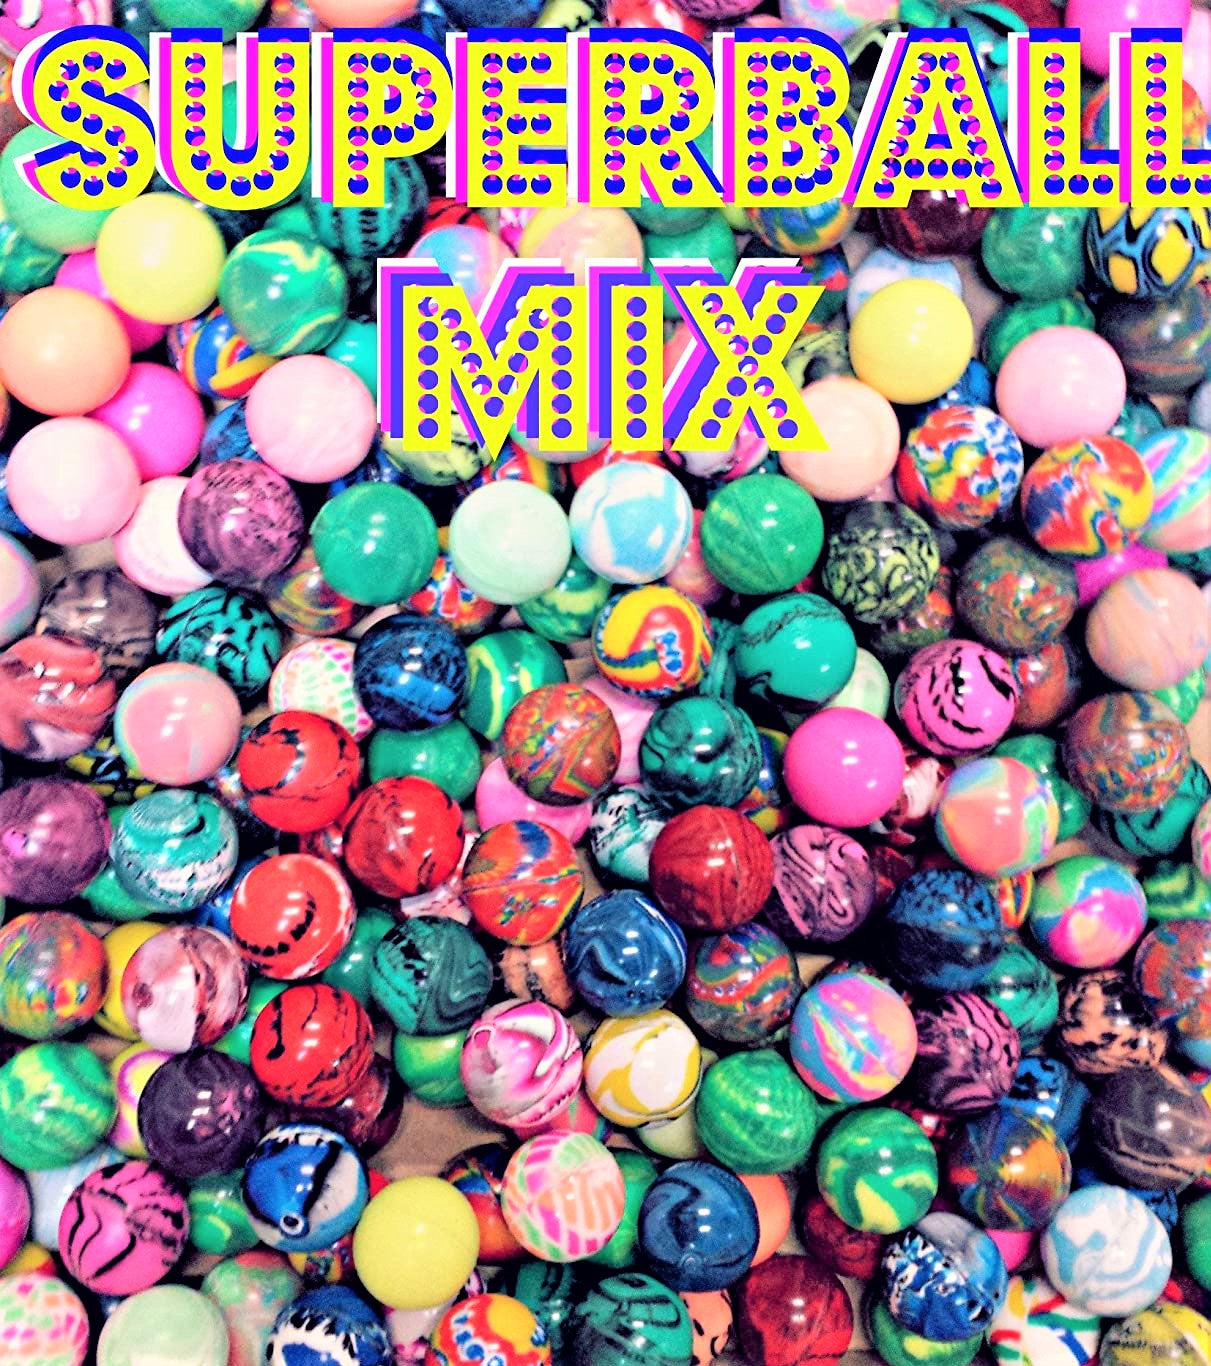 27MM ASSORTED SUPER BOUNCY BALLS - 250 COUNT